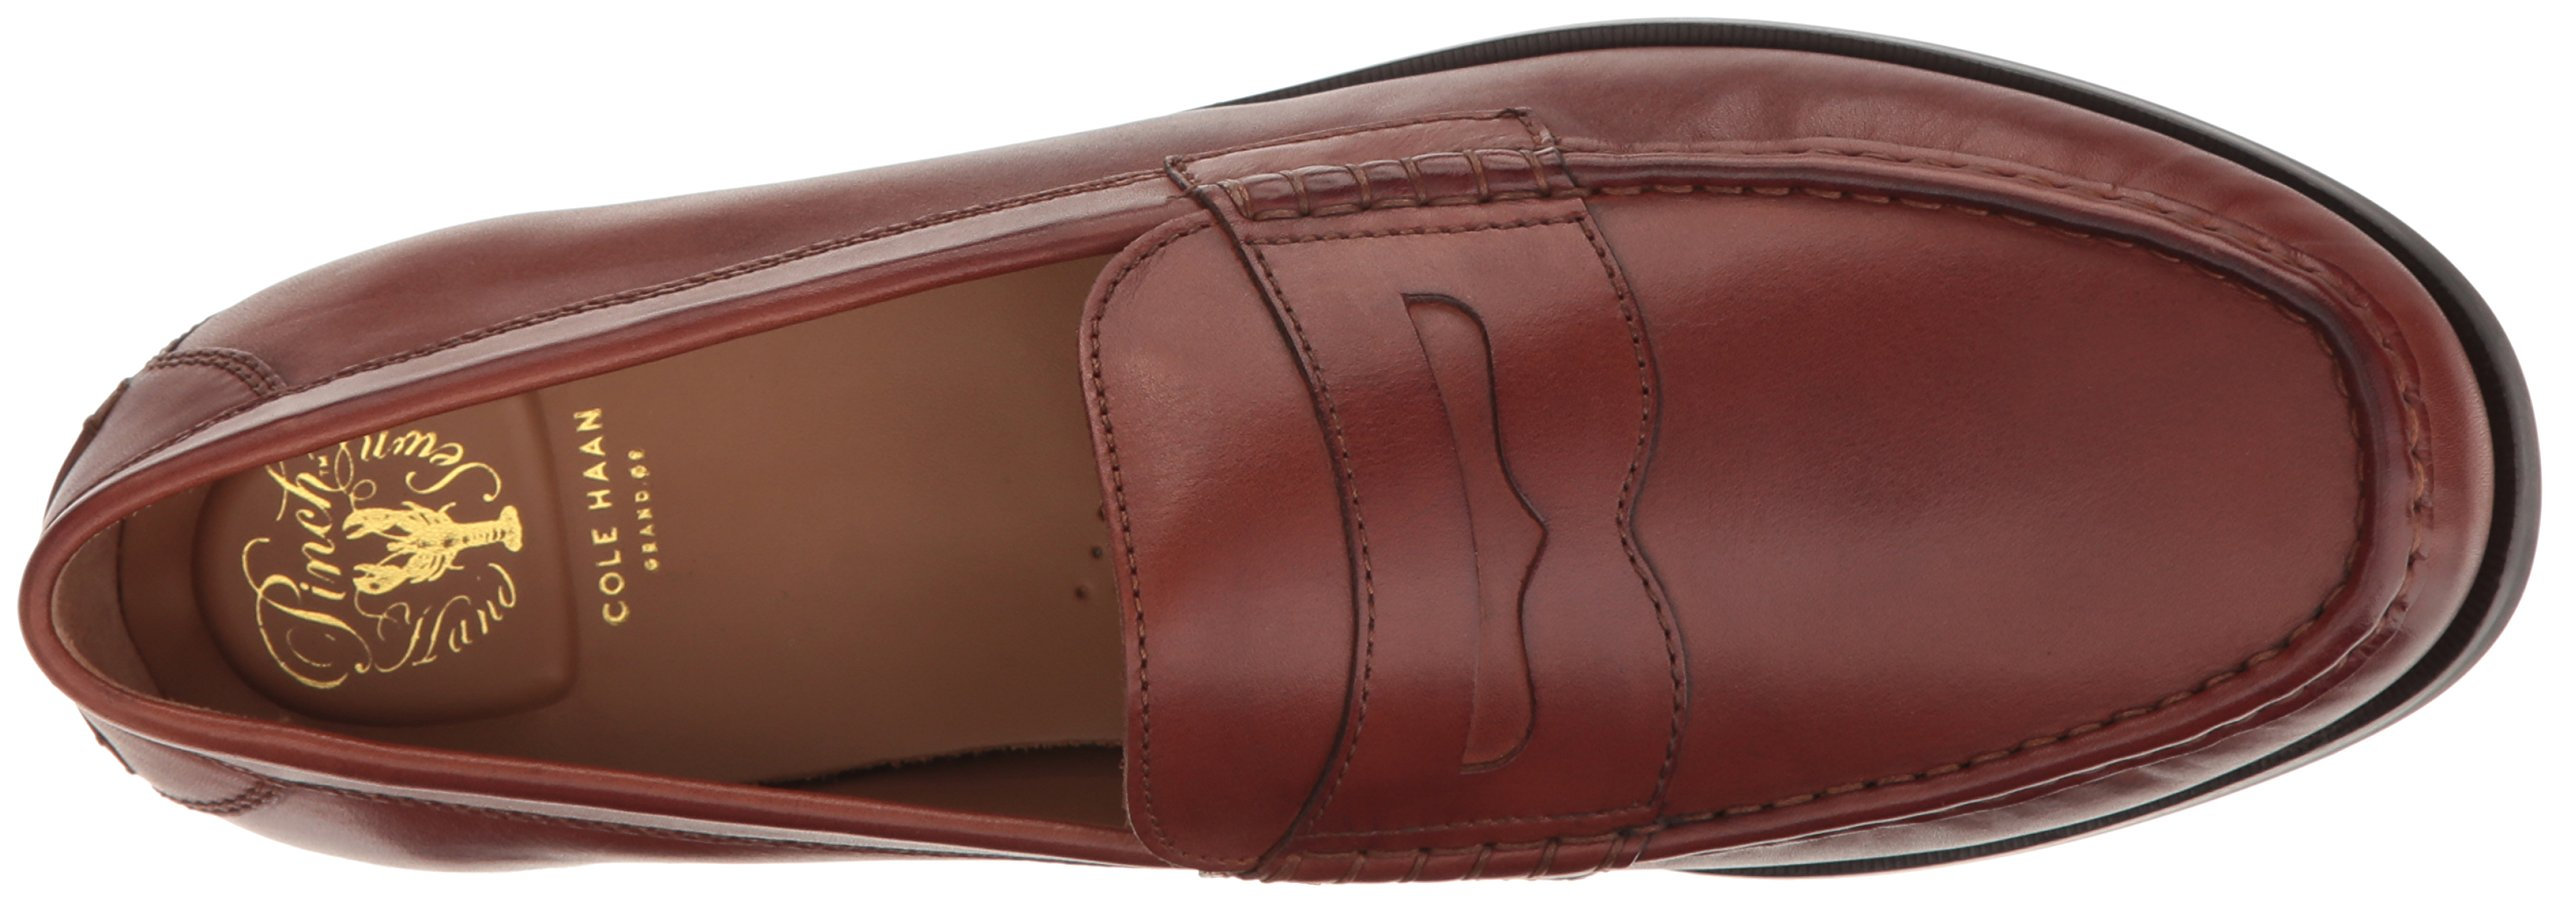 6129e9ac17b Cole Haan Men s Pinch Friday Contemporary Loafer